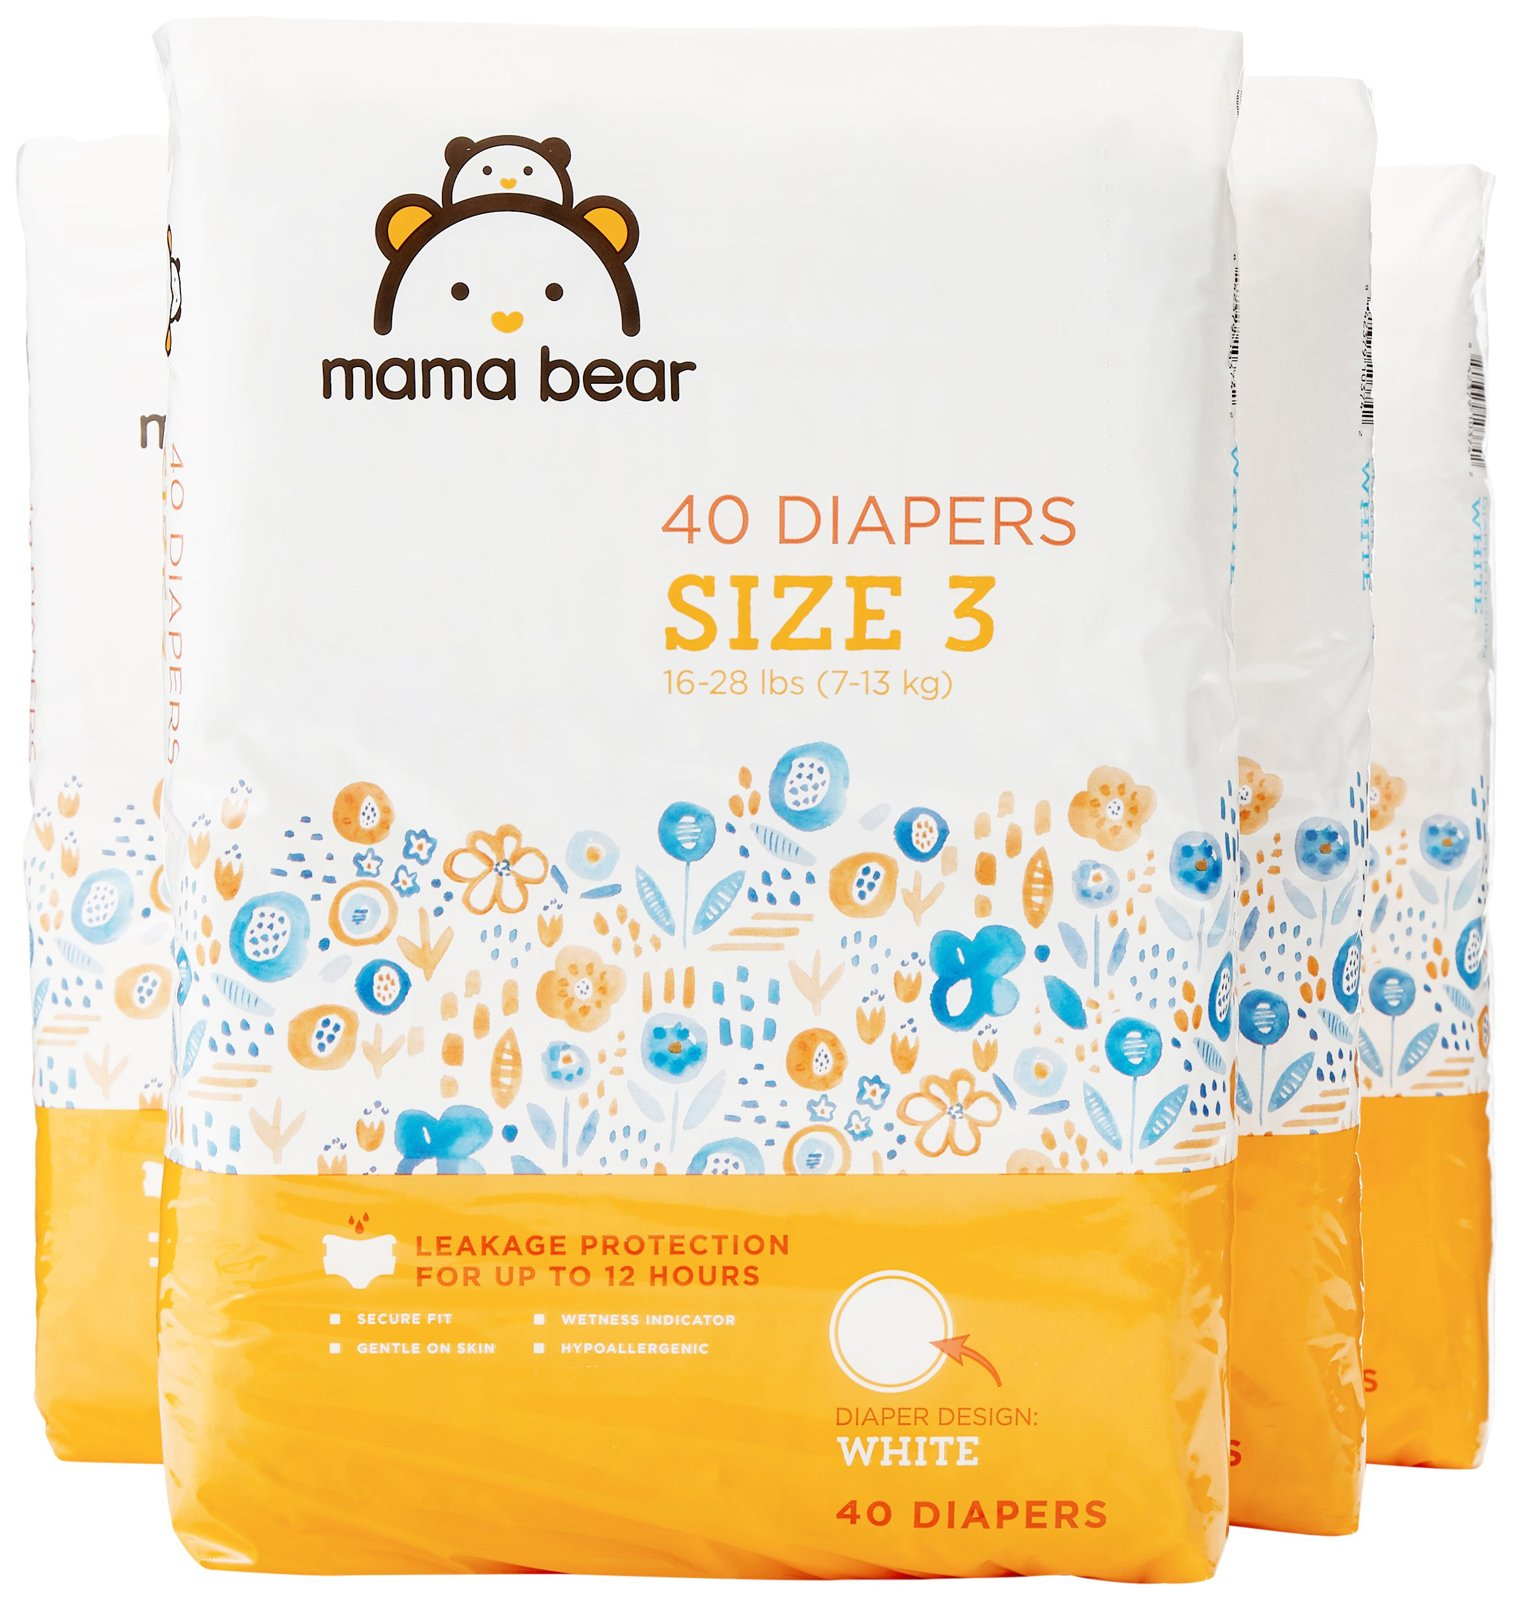 Amazon Brand - Mama Bear Diapers Size 3, 160 Count, White Print (4 packs of 40) [Packaging May Vary] by Mama Bear